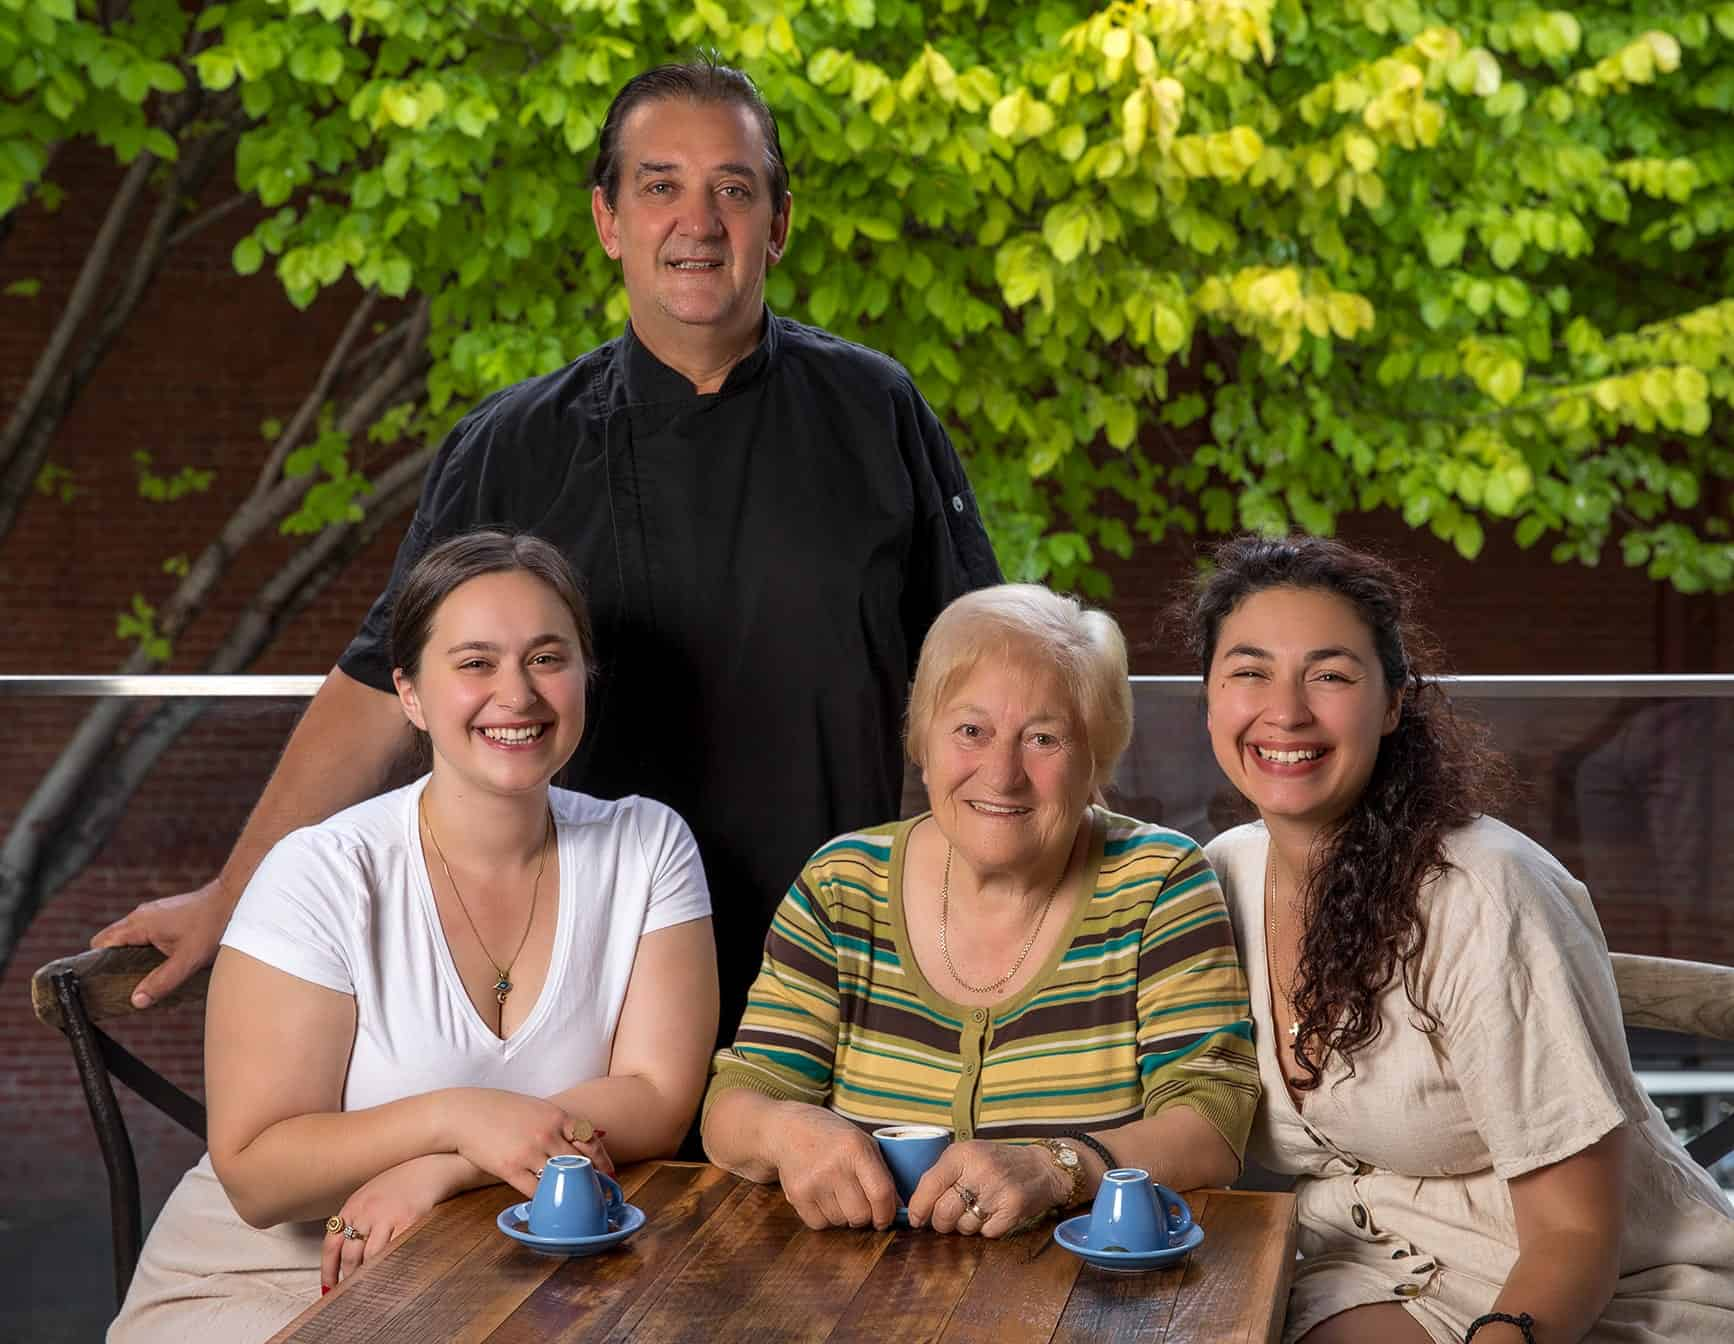 two sisters Natalie and Thierry with Greek yiayia Eleni and chef Hristos standing above them